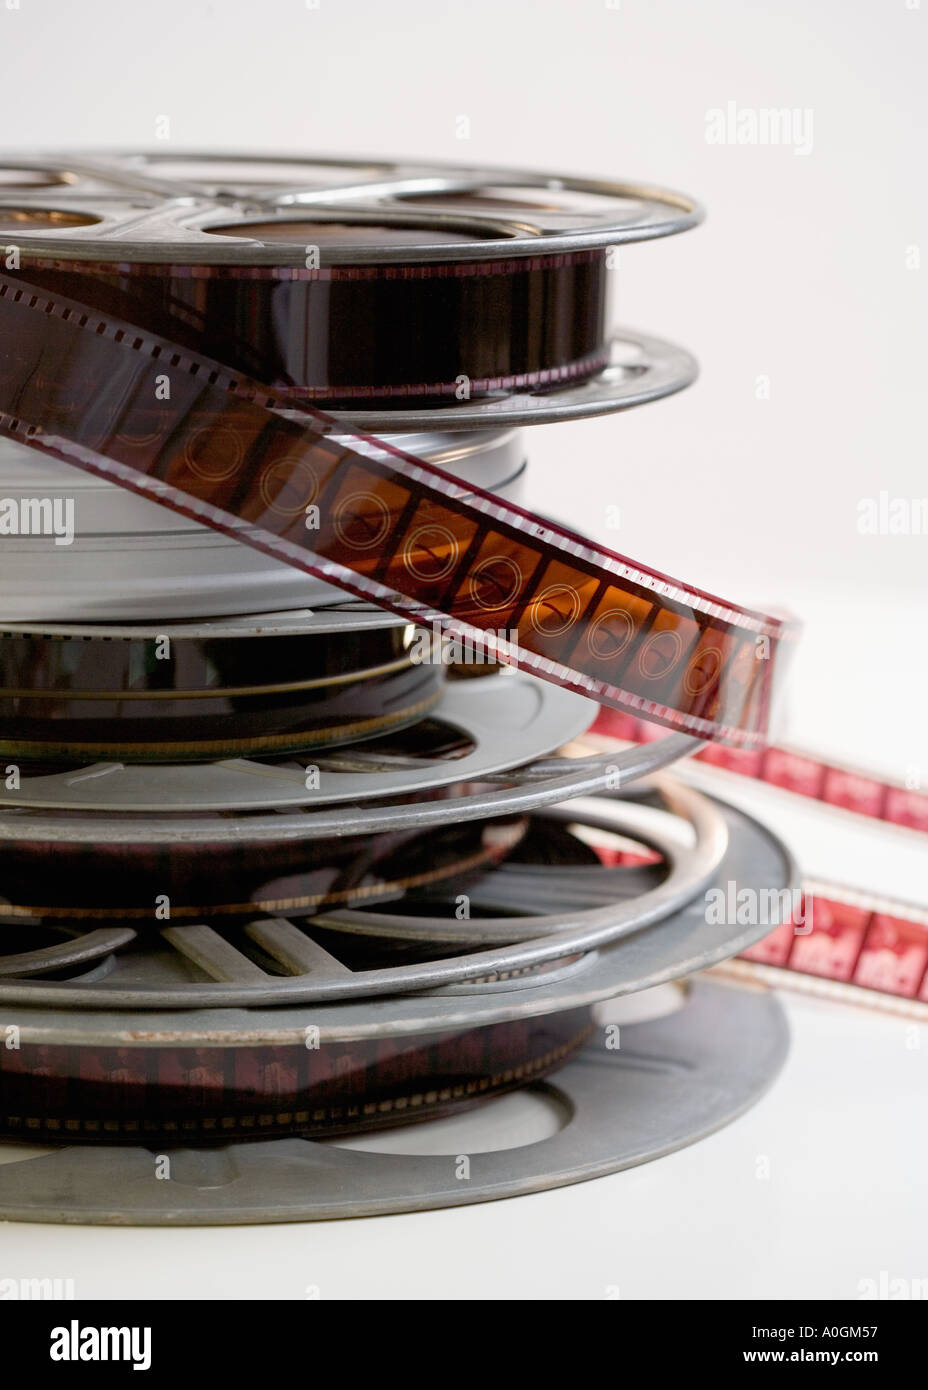 Stack of movie film reels - Stock Image